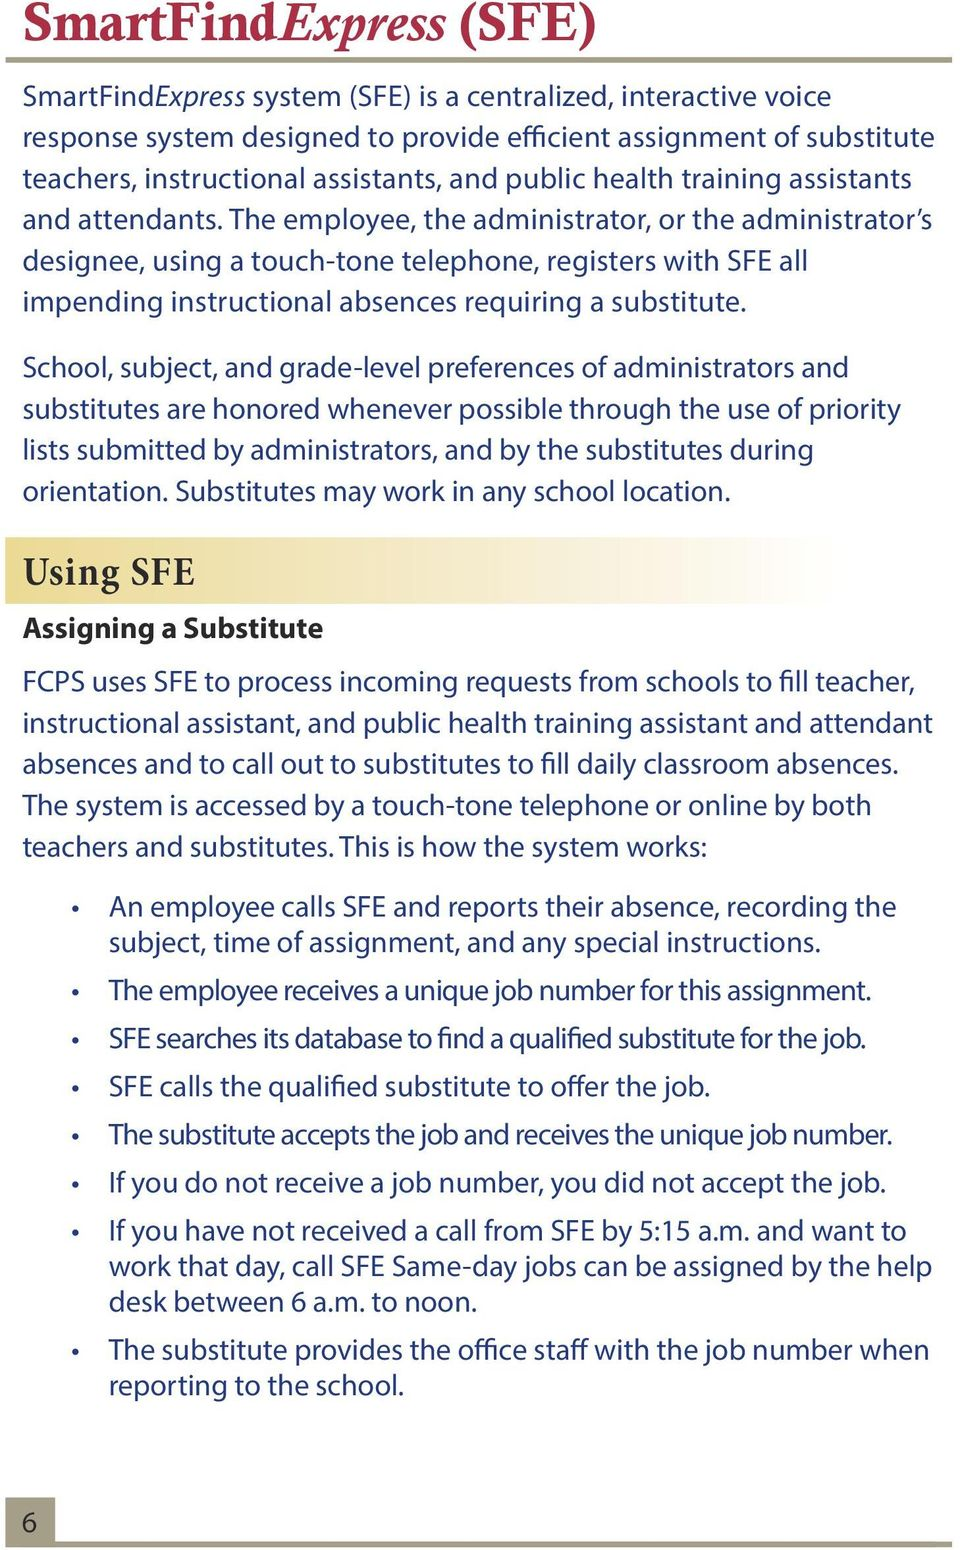 The employee, the administrator, or the administrator s designee, using a touch-tone telephone, registers with SFE all impending instructional absences requiring a substitute.